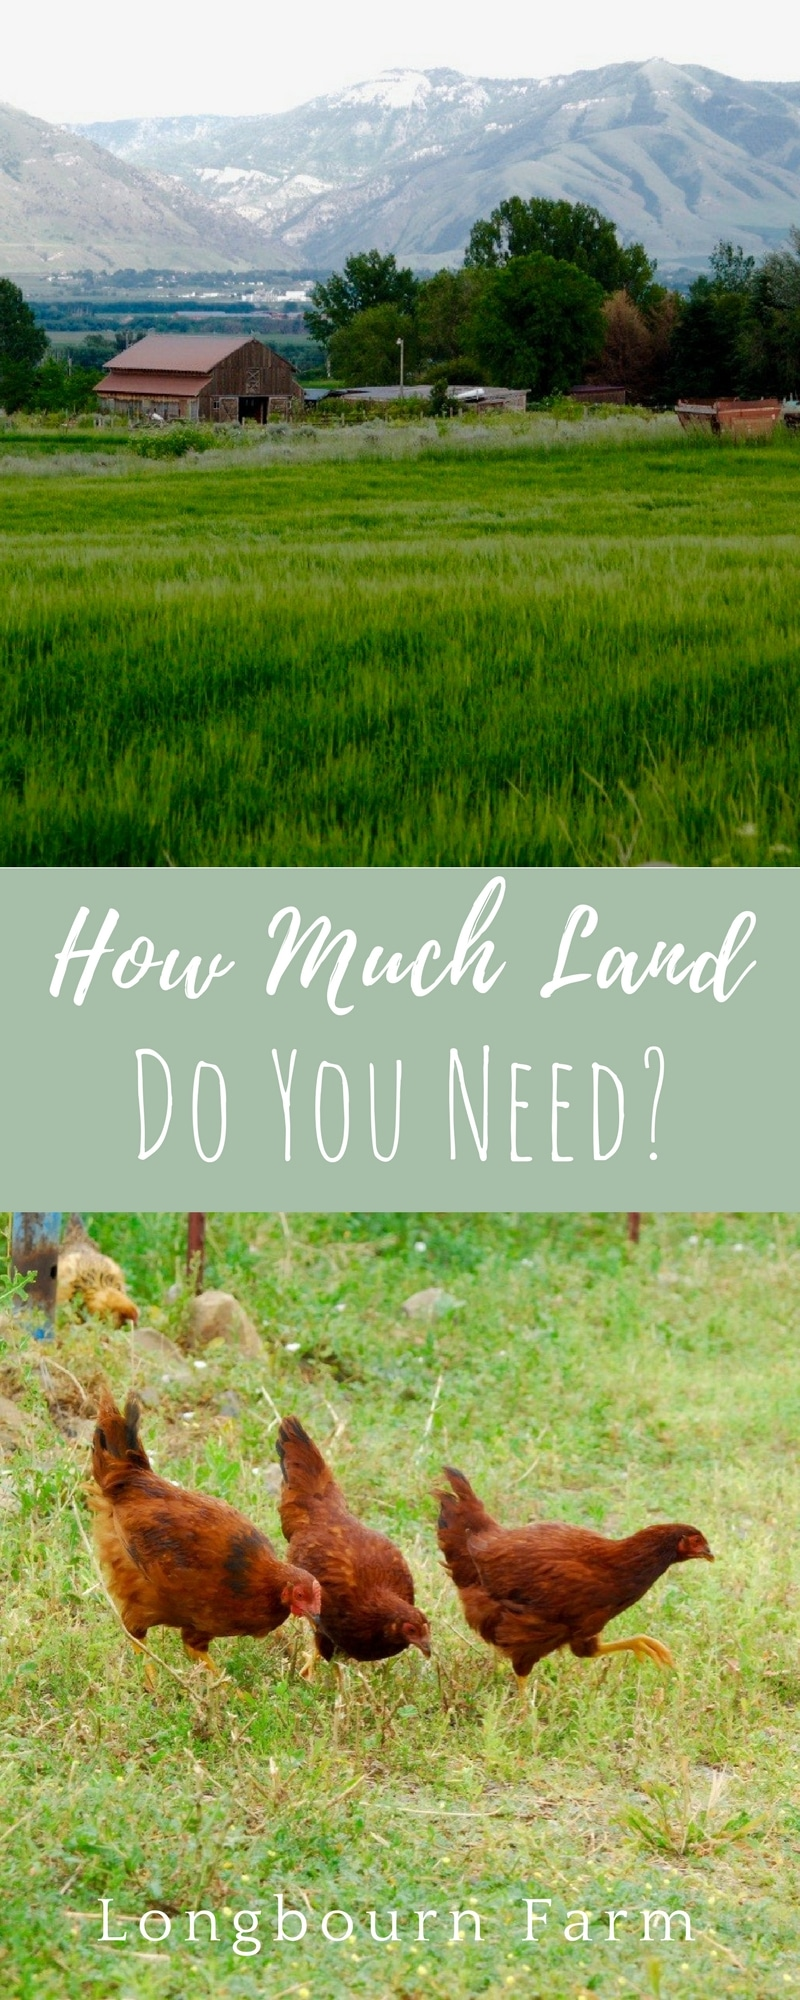 How much land do I need for...A cow?A horse?A goat?A lamb?Chickens?This is a common question people who are interestedin having animals ask.